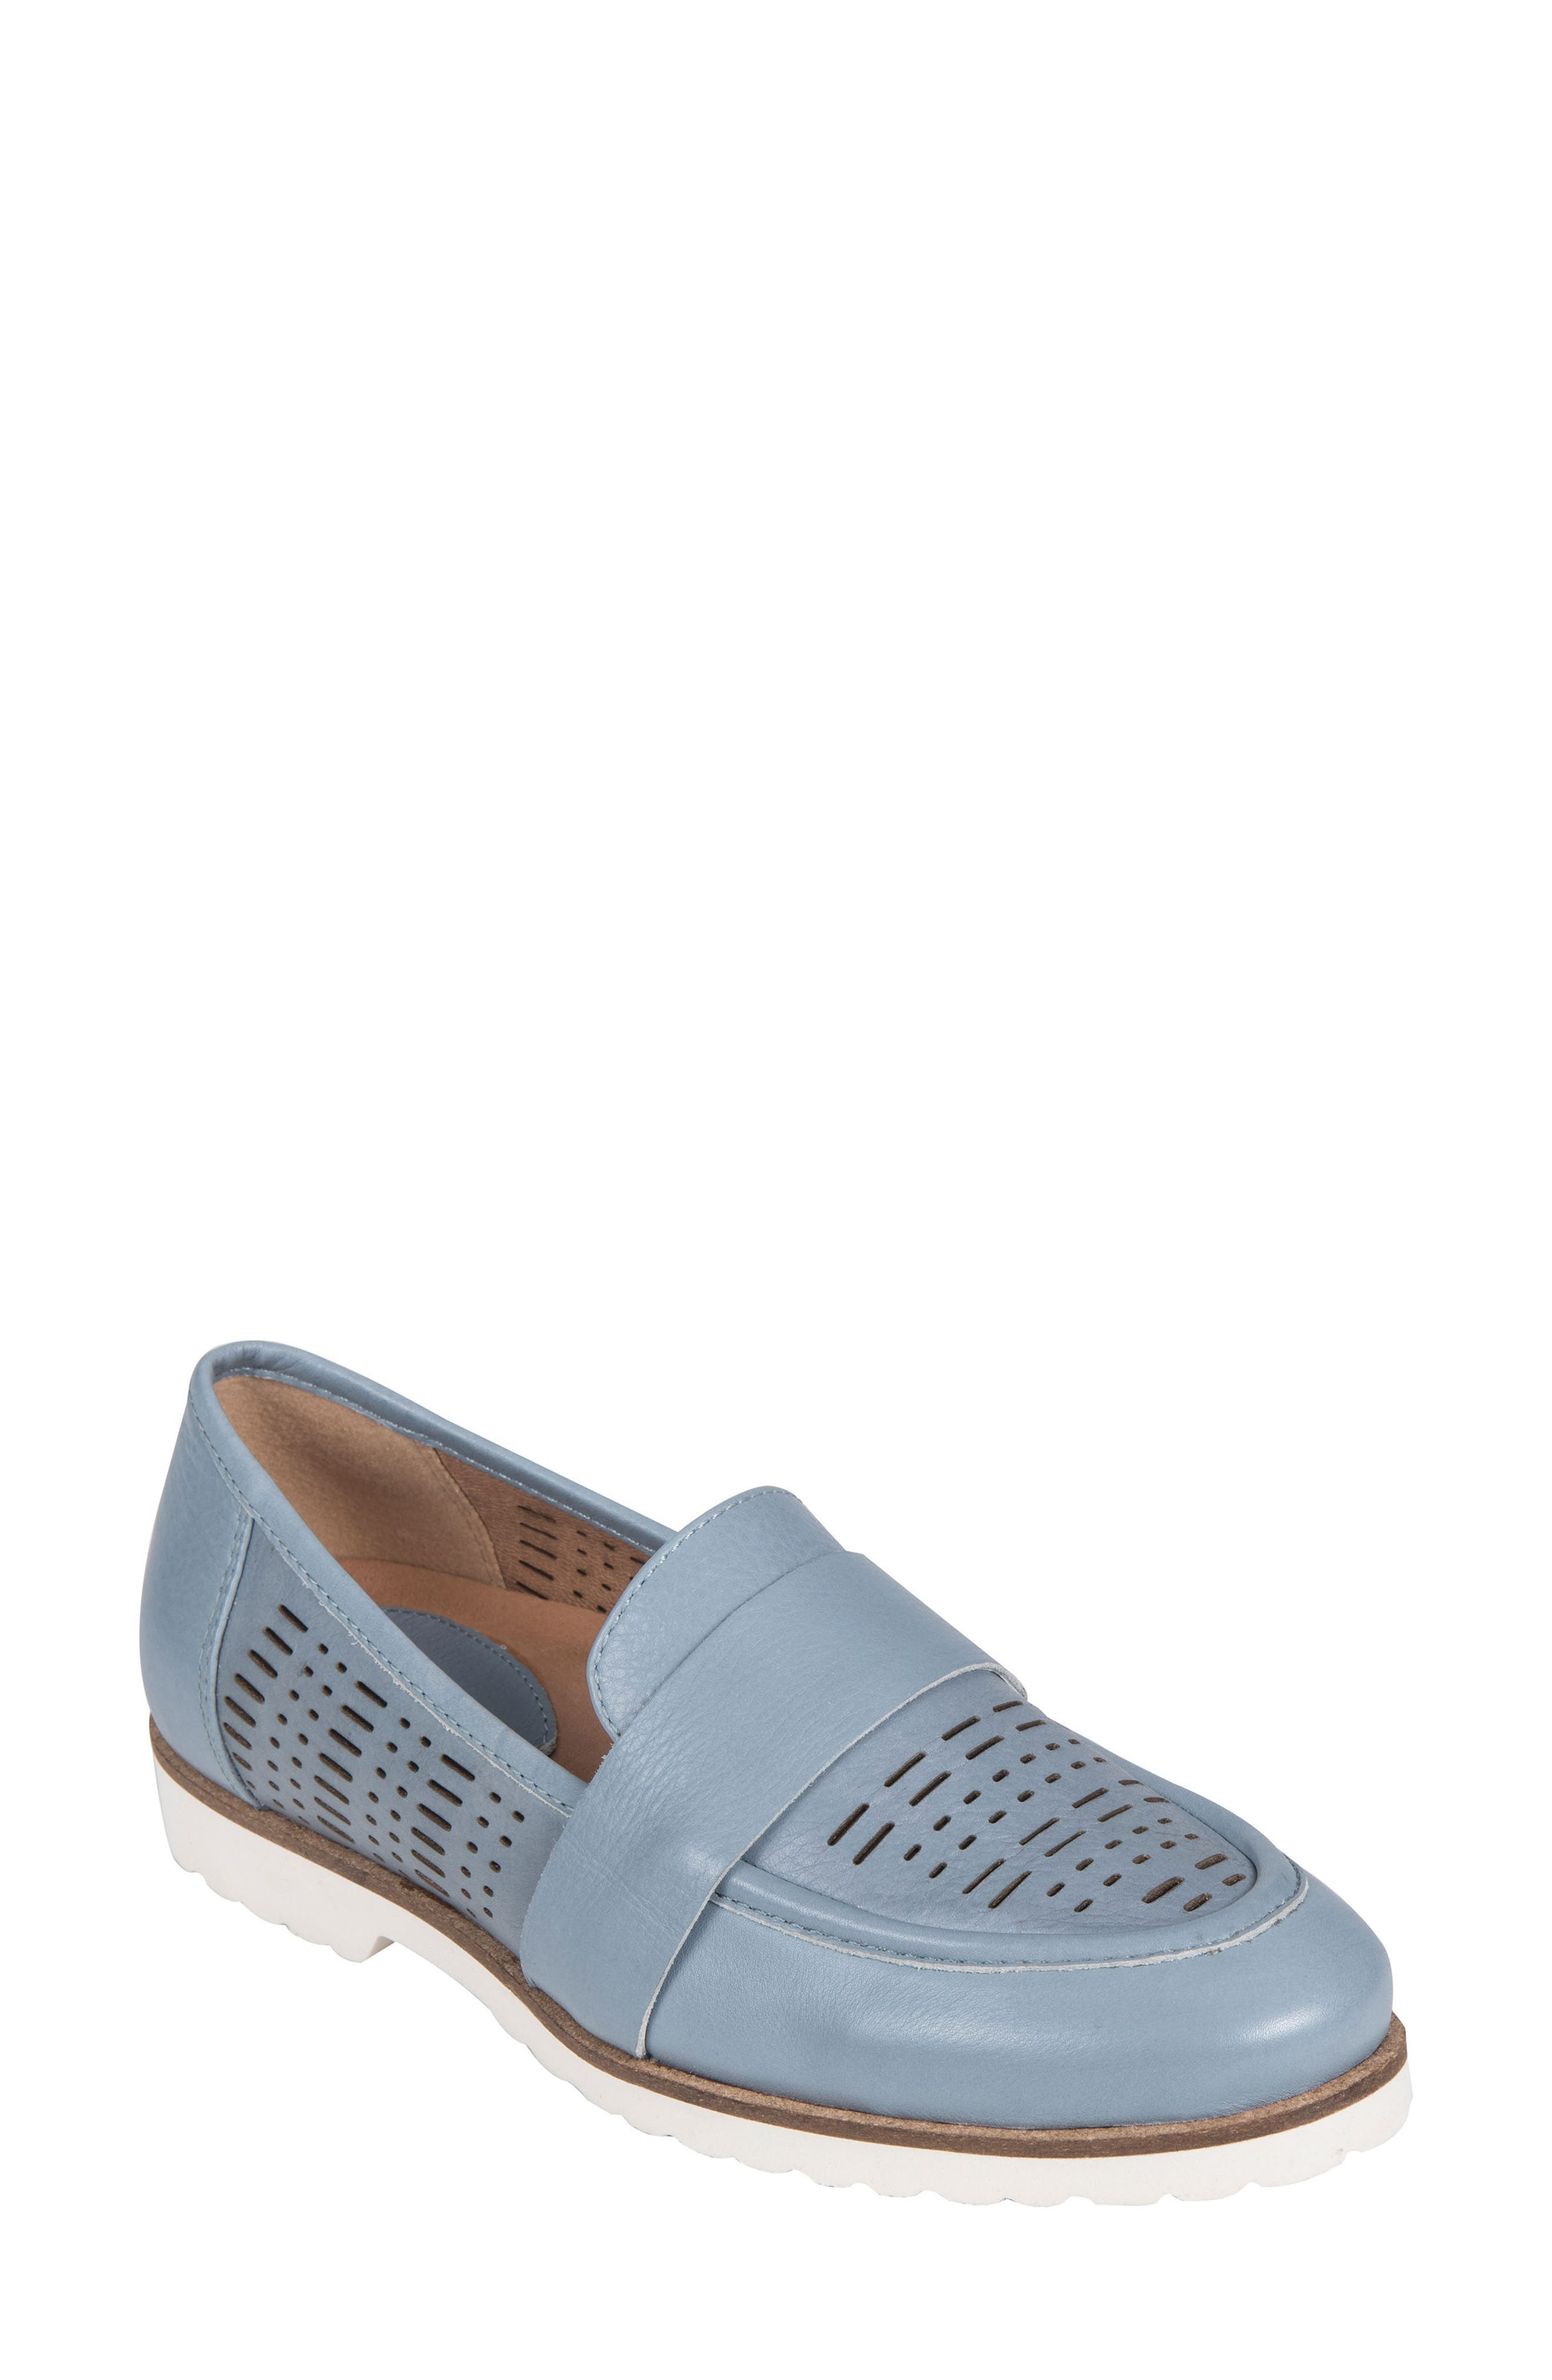 Masio Loafer,                             Main thumbnail 1, color,                             Blue Leather